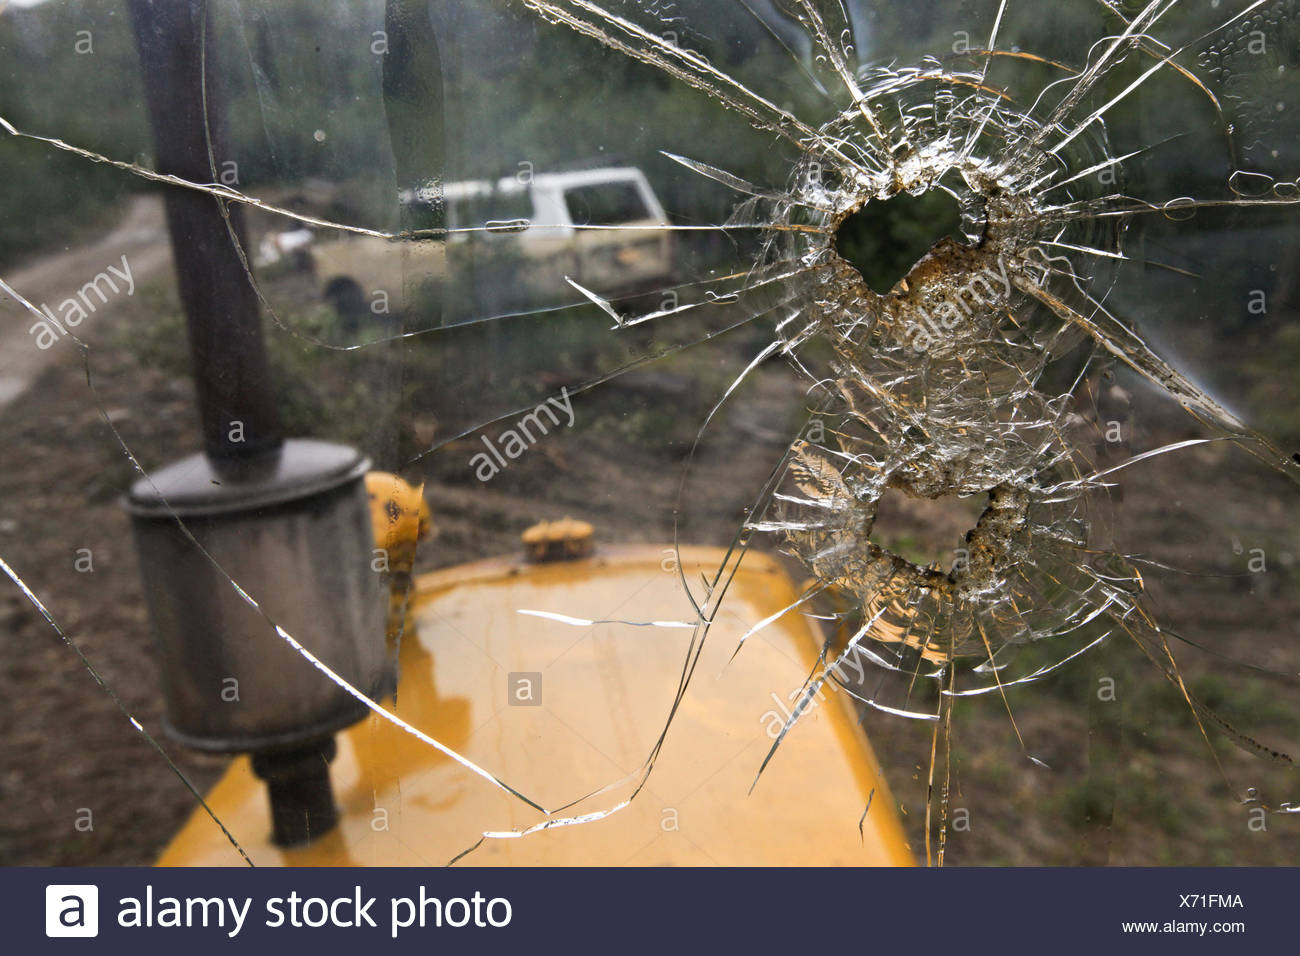 Bullet holes are visible in the windshield of construction equipment that sits in Denali National Park and Preserve. - Stock Image